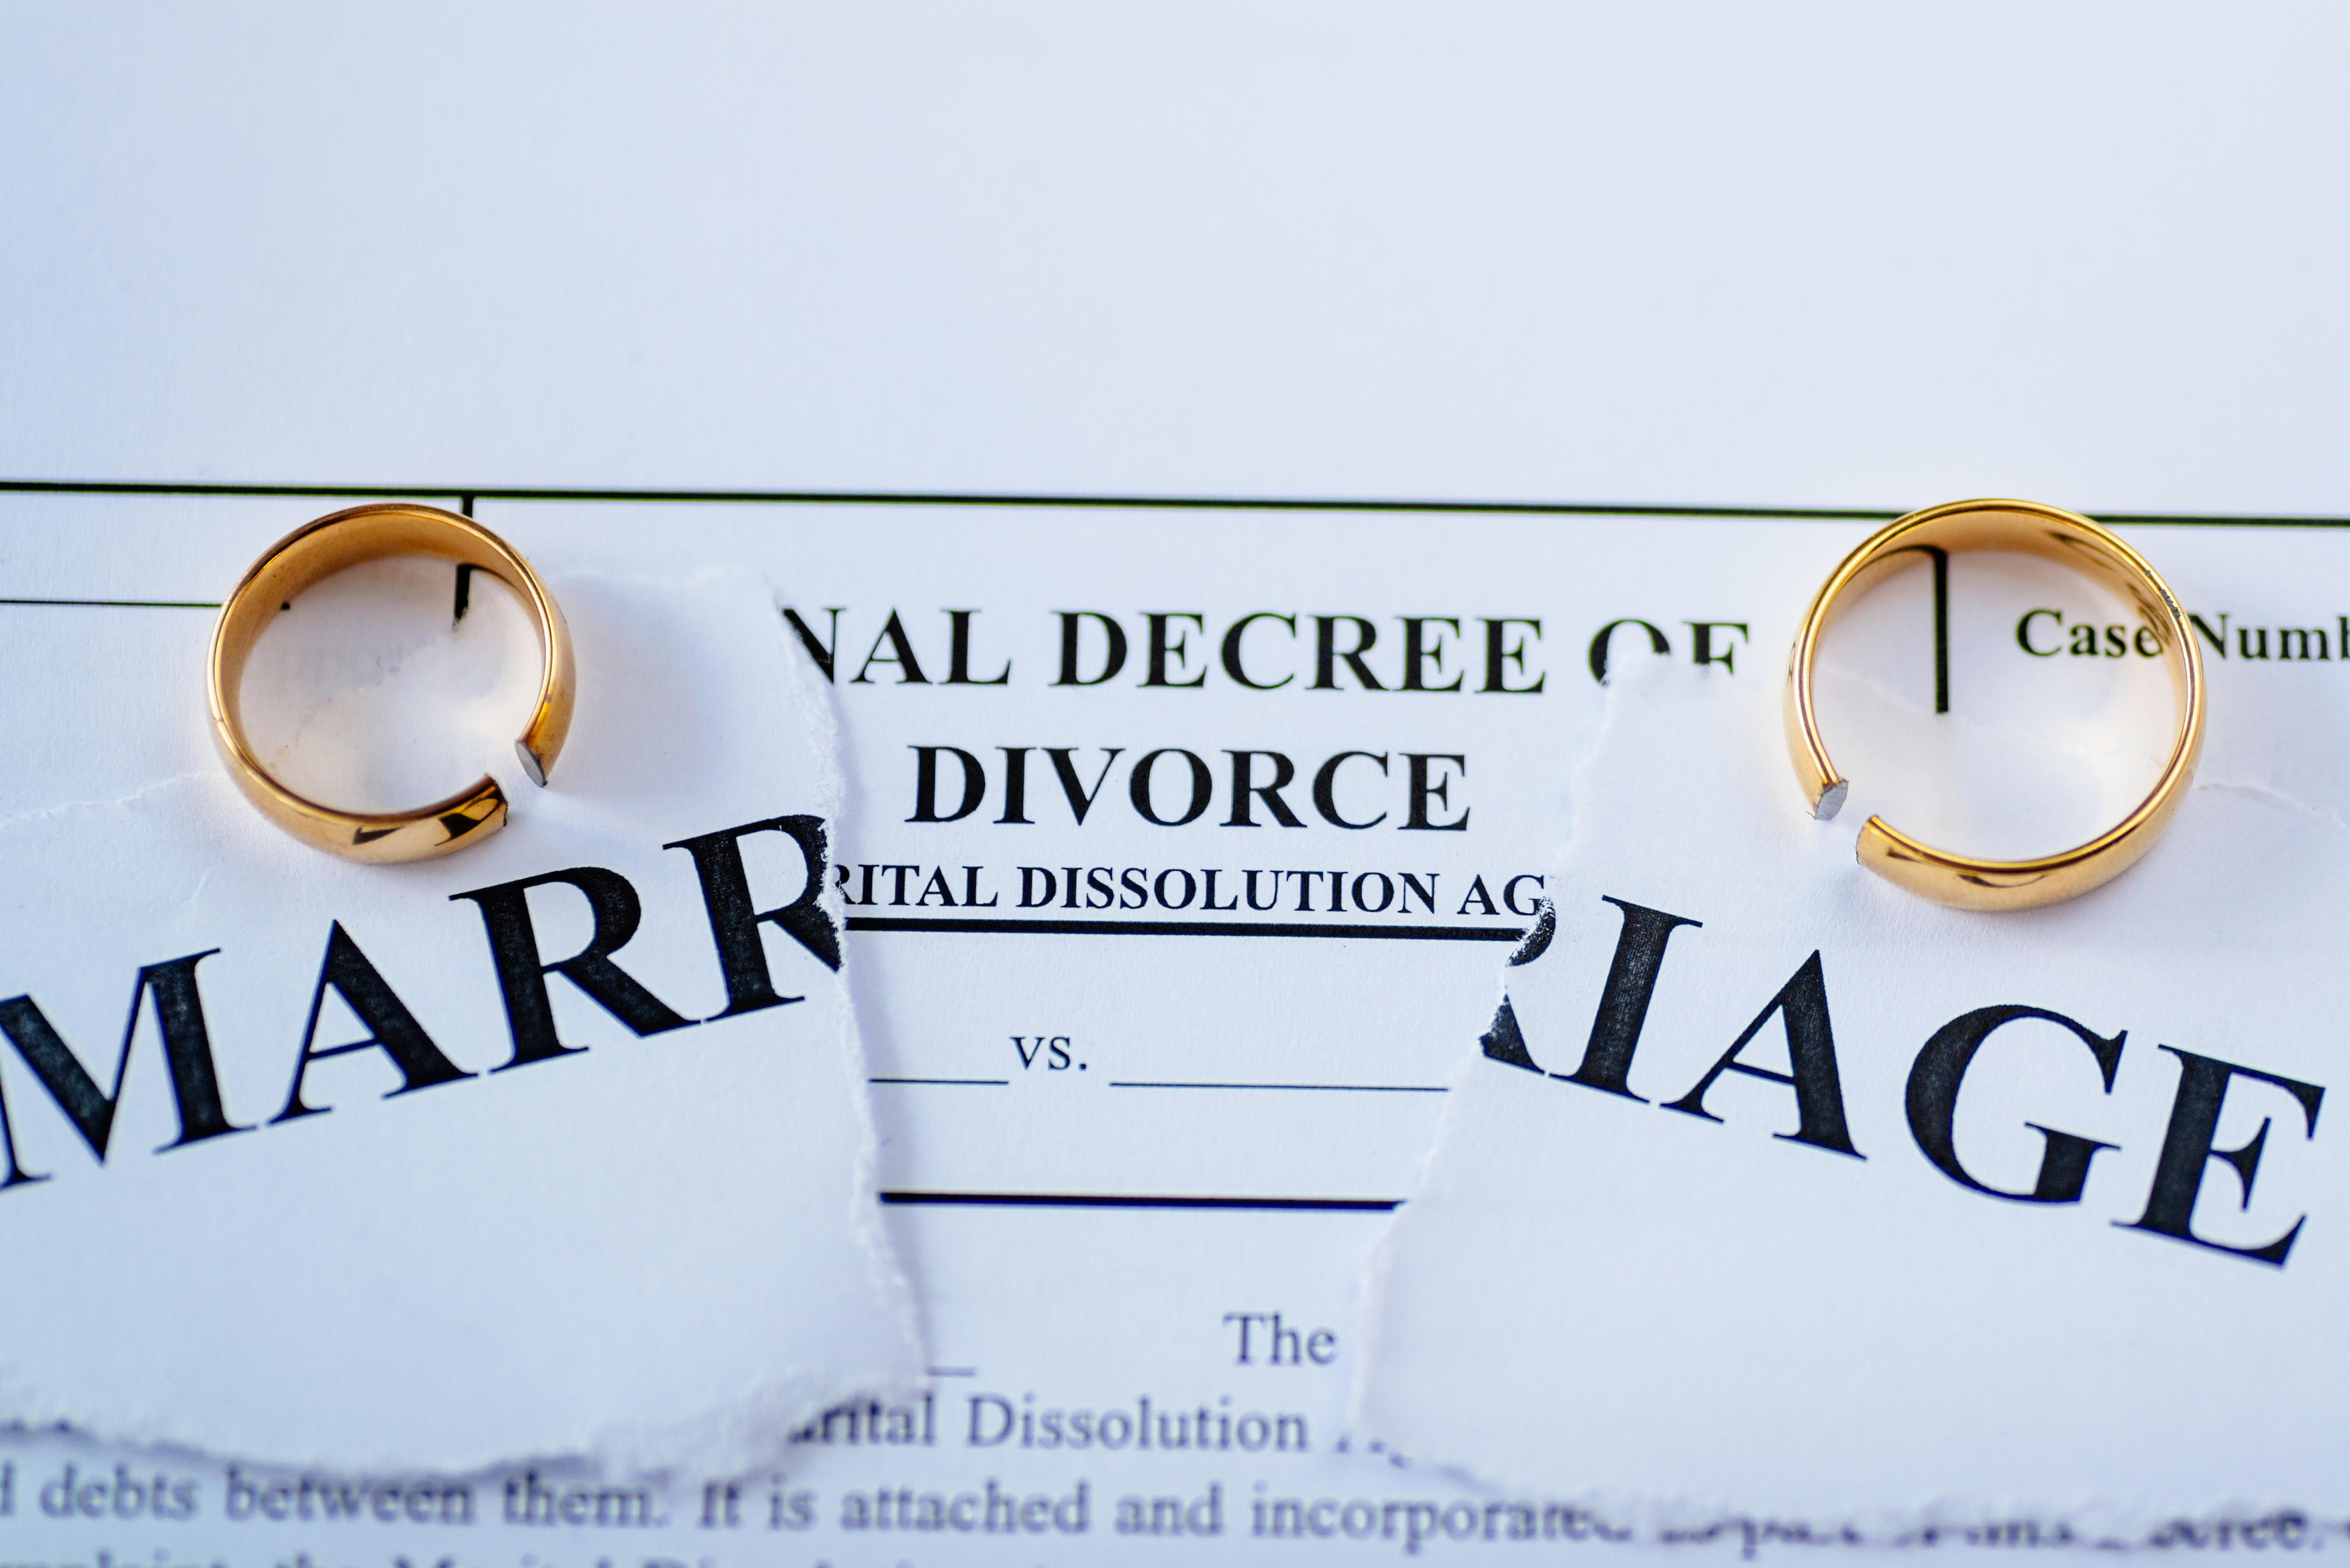 How to deal with divorce at work, how to handle divorce at work